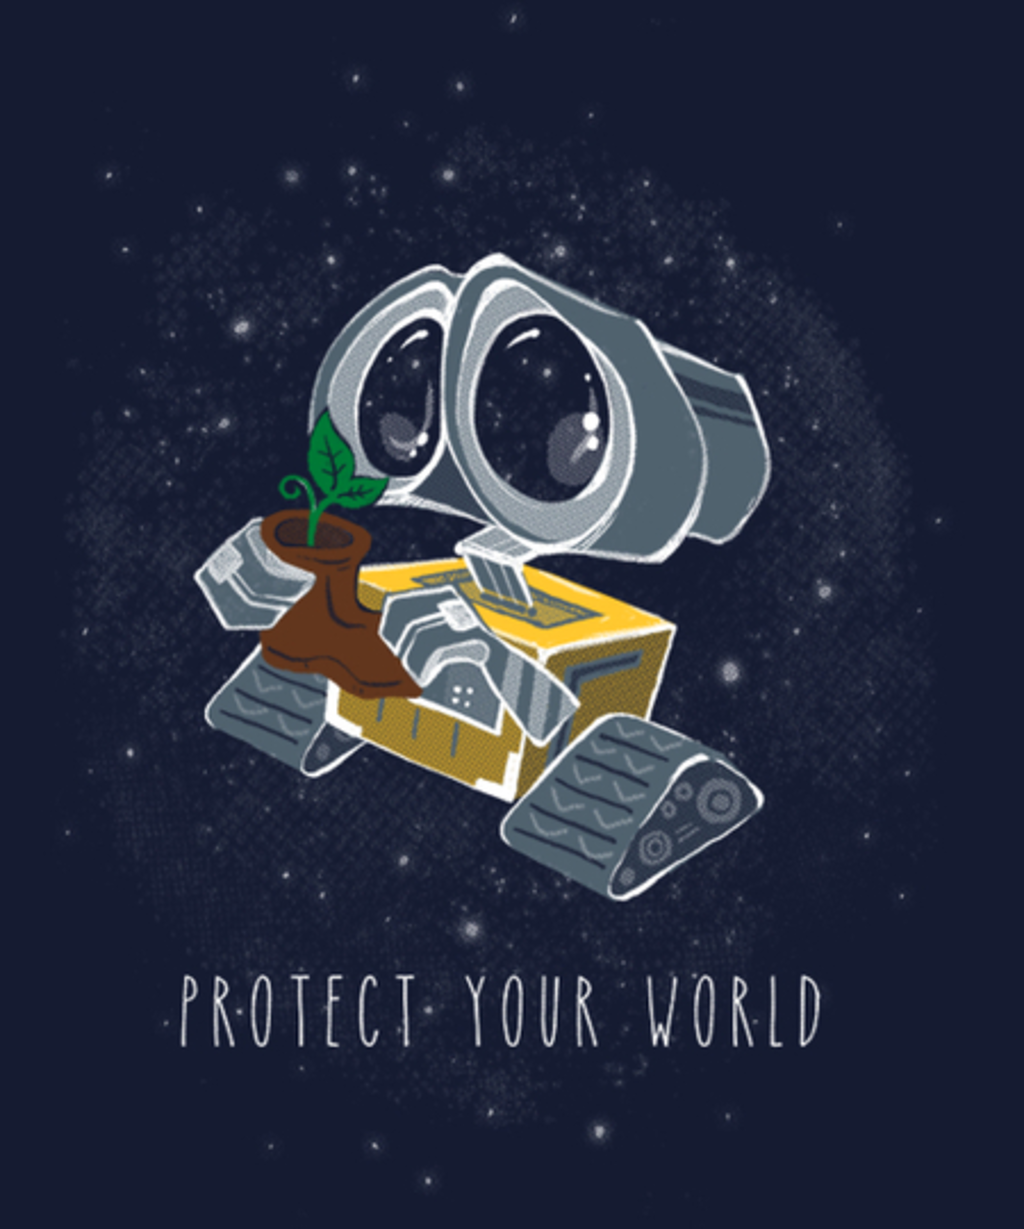 Qwertee: Protect your world